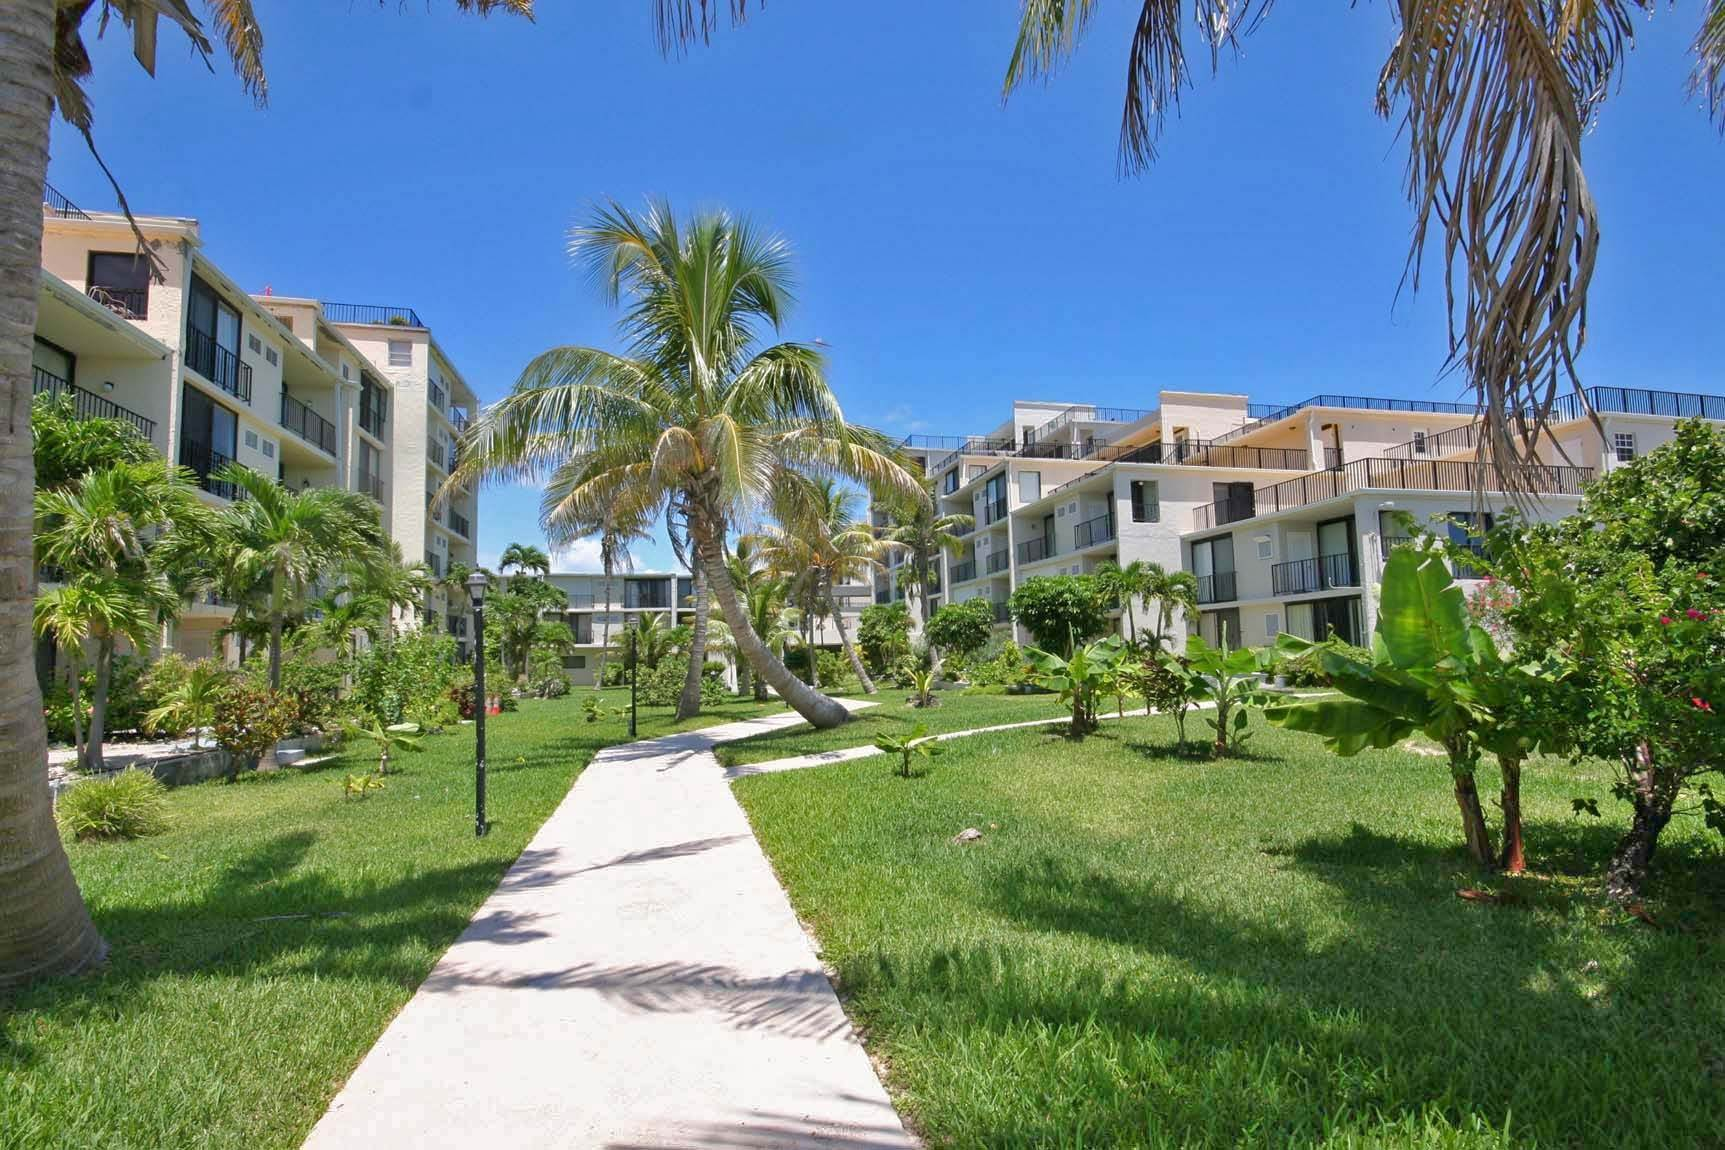 Co-op / Condo for Sale at Nicely Renovated Coral Beach Studio Lucayan Beach West, Freeport And Grand Bahama, Bahamas